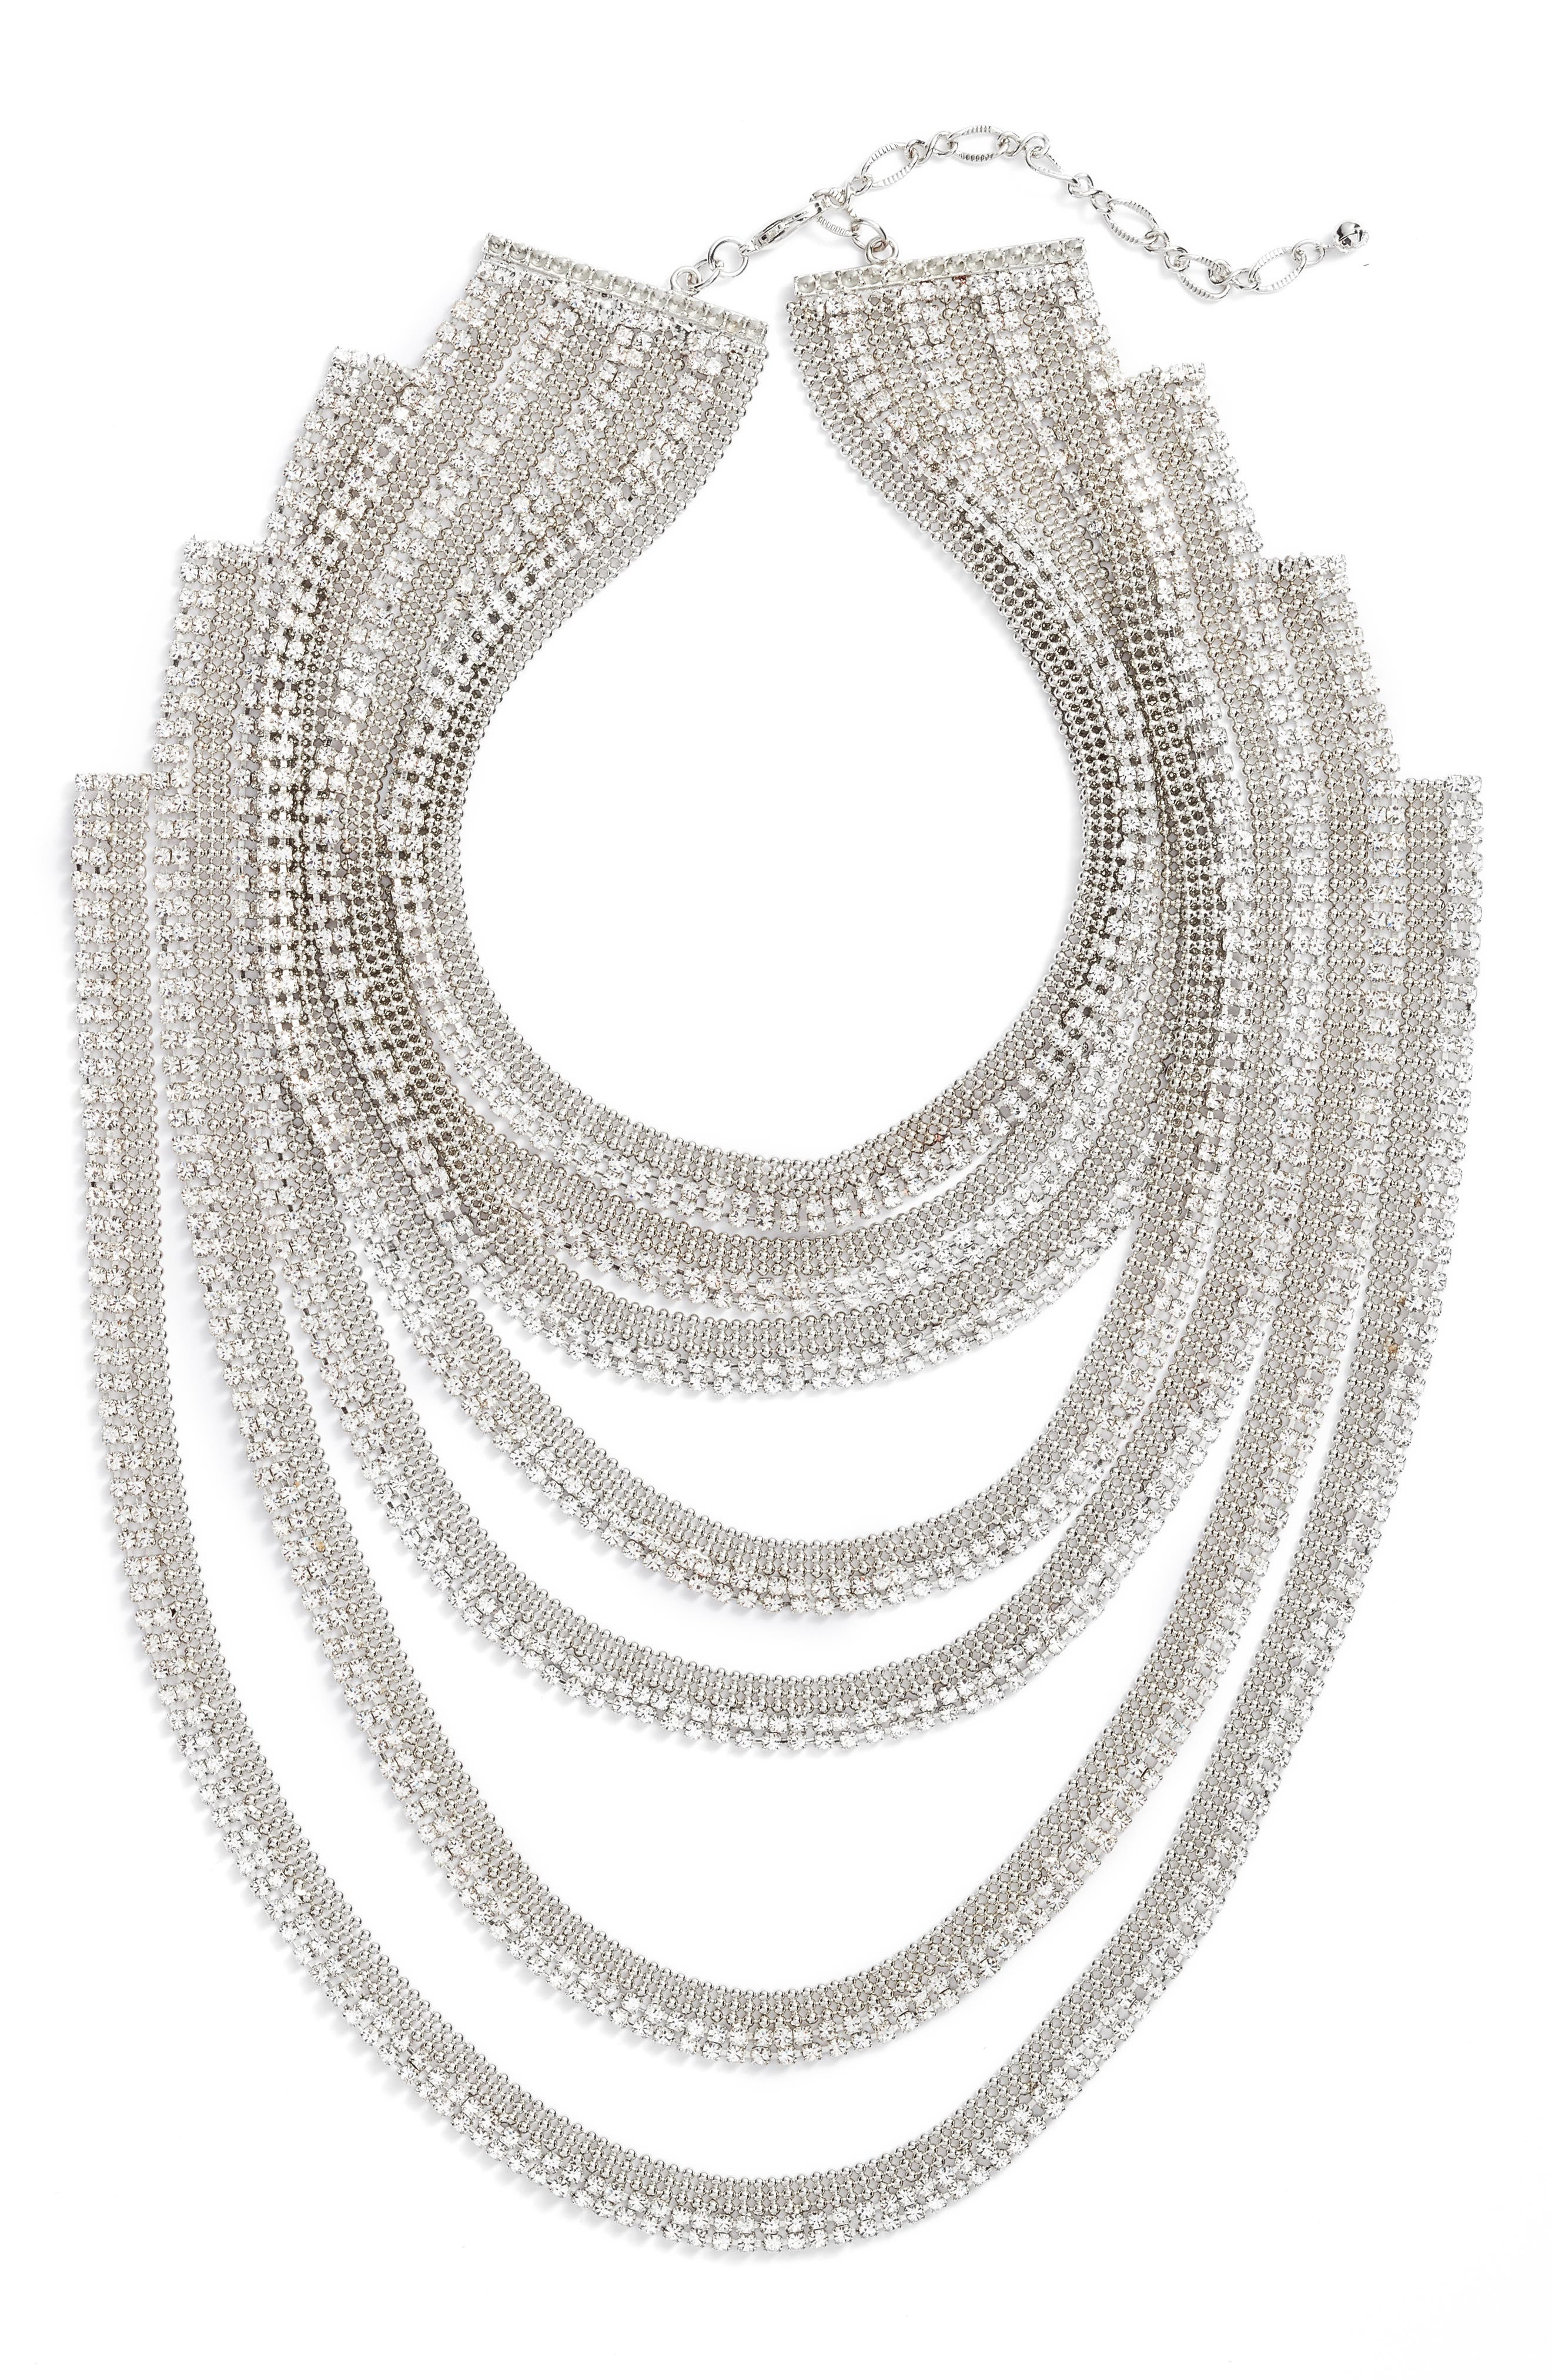 Multistrand Statement Necklace,                         Main,                         color, Silver